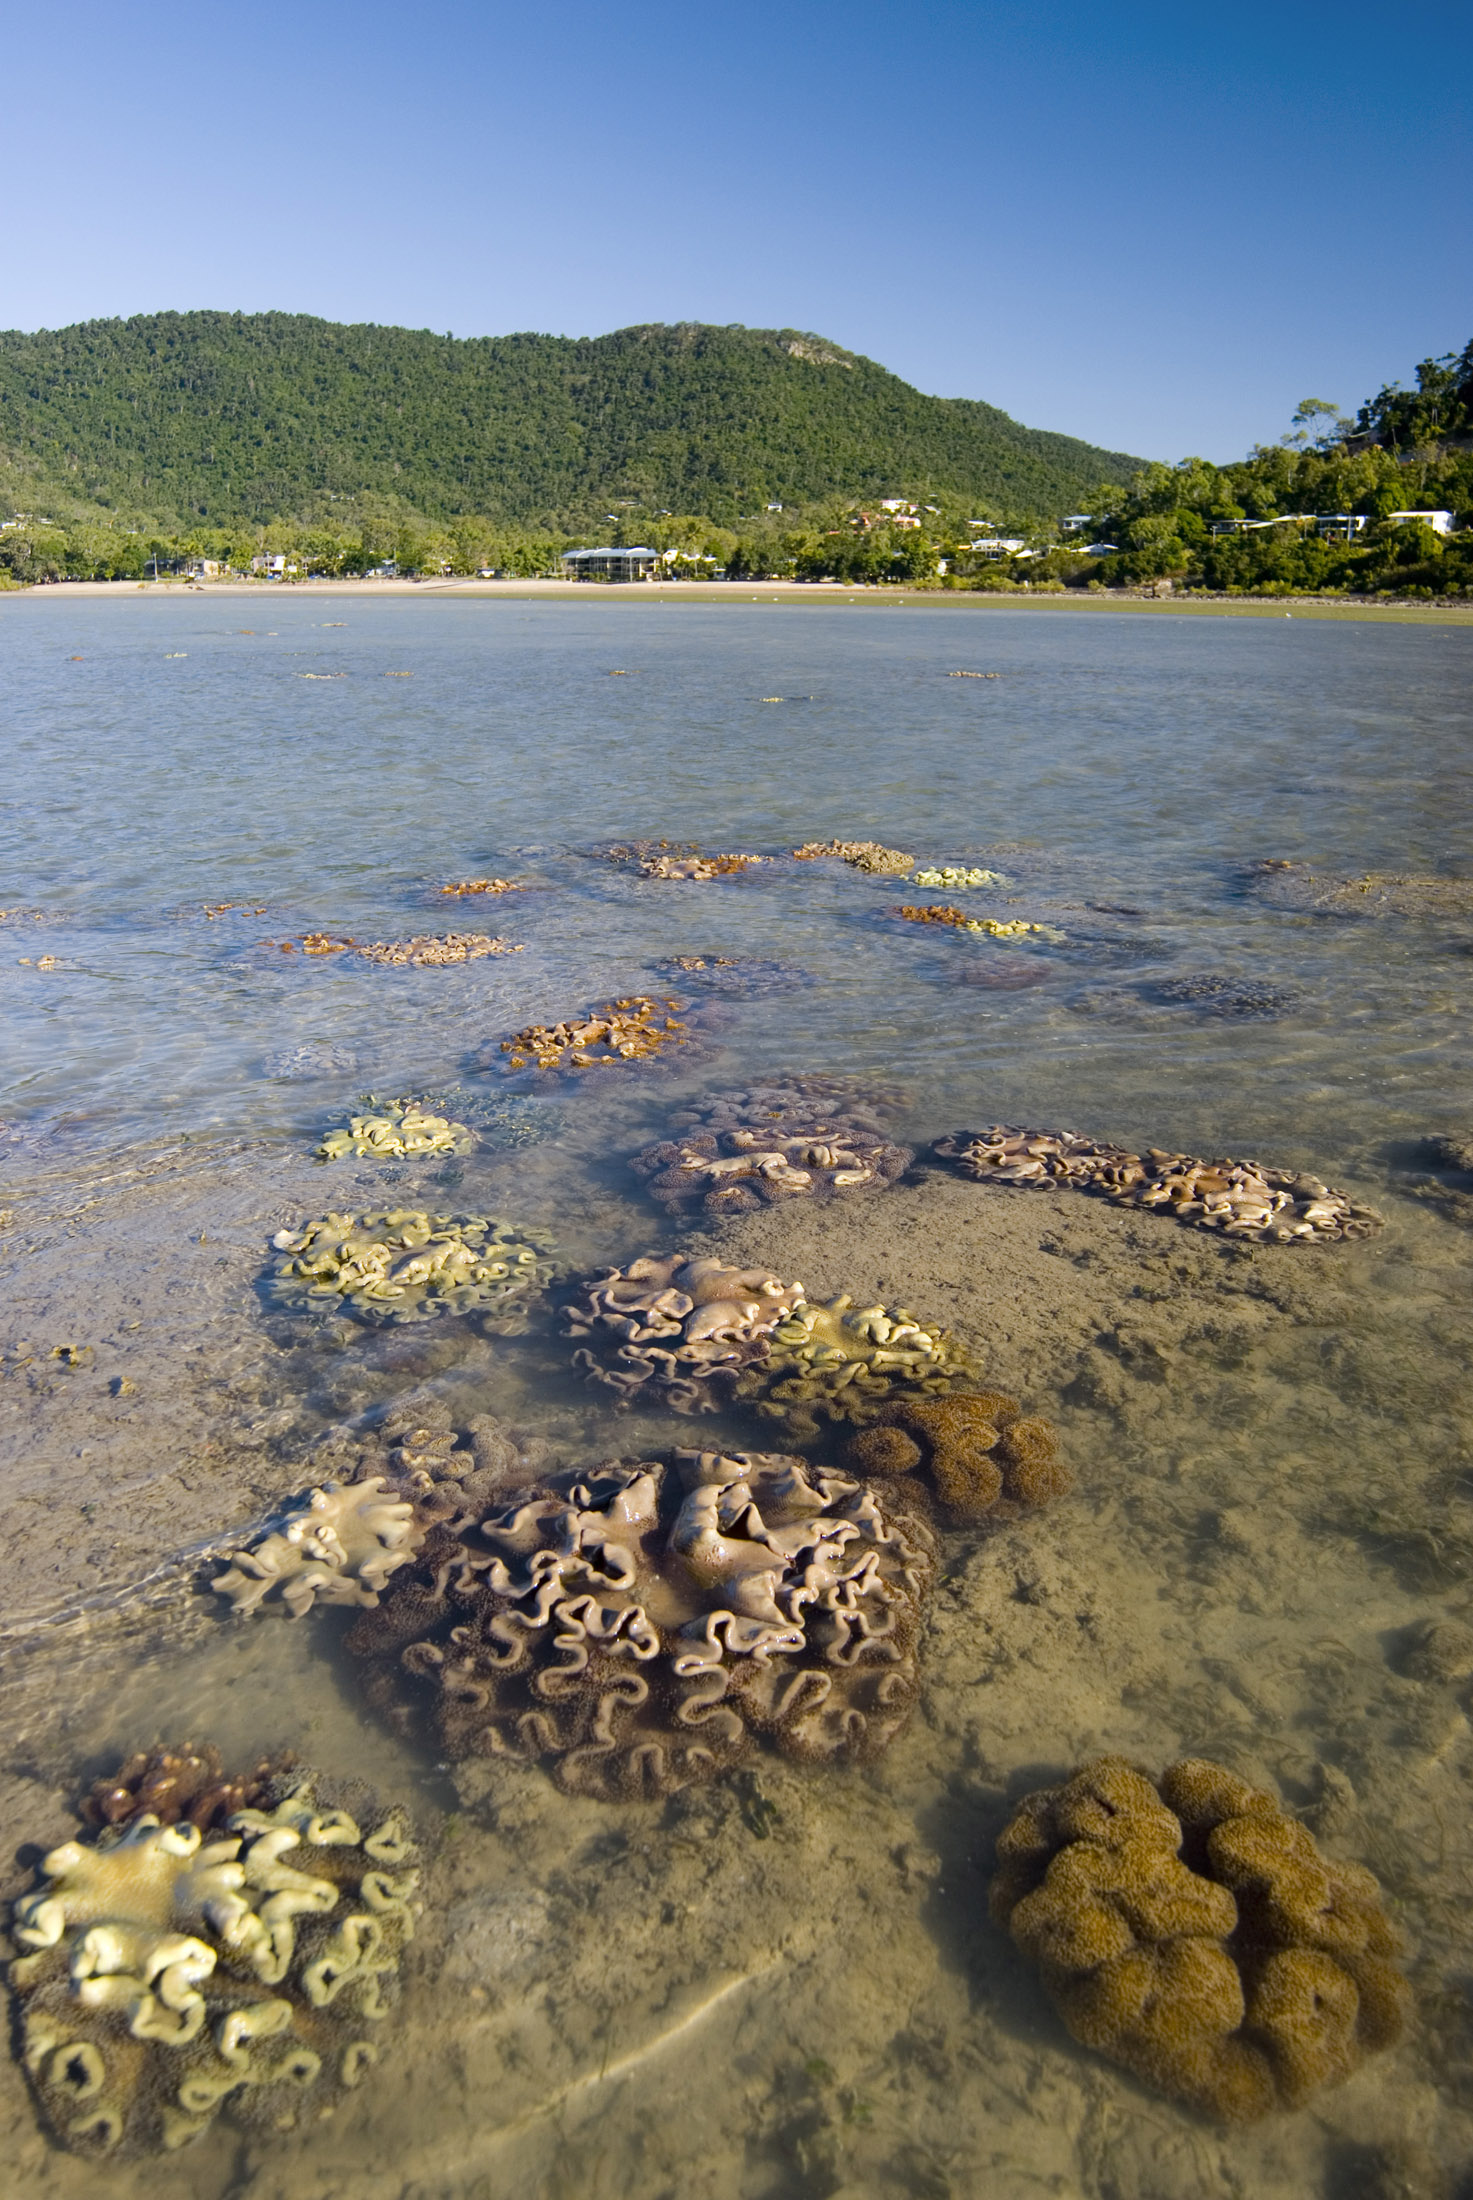 corals in shallow tropical water just off shore at low tide